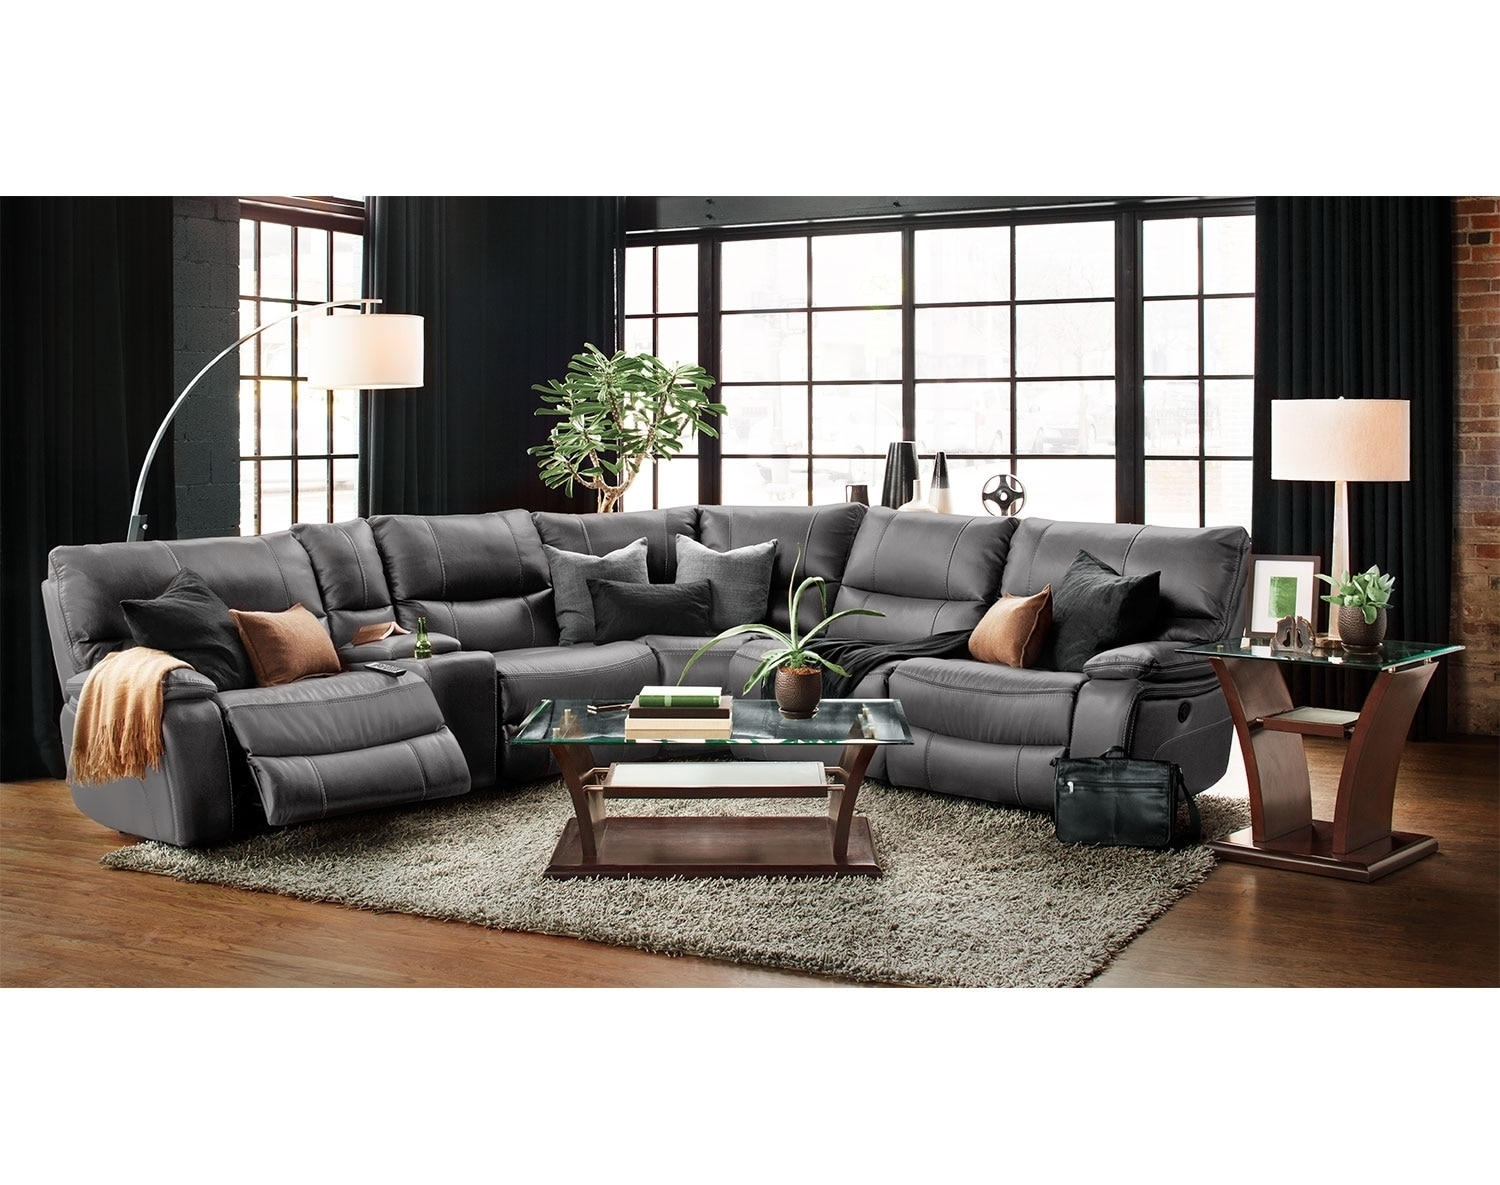 Inspirational Types Of Sectional Sofas 15 In Sectional Sofas With Rochester Ny Sectional Sofas (Image 6 of 10)